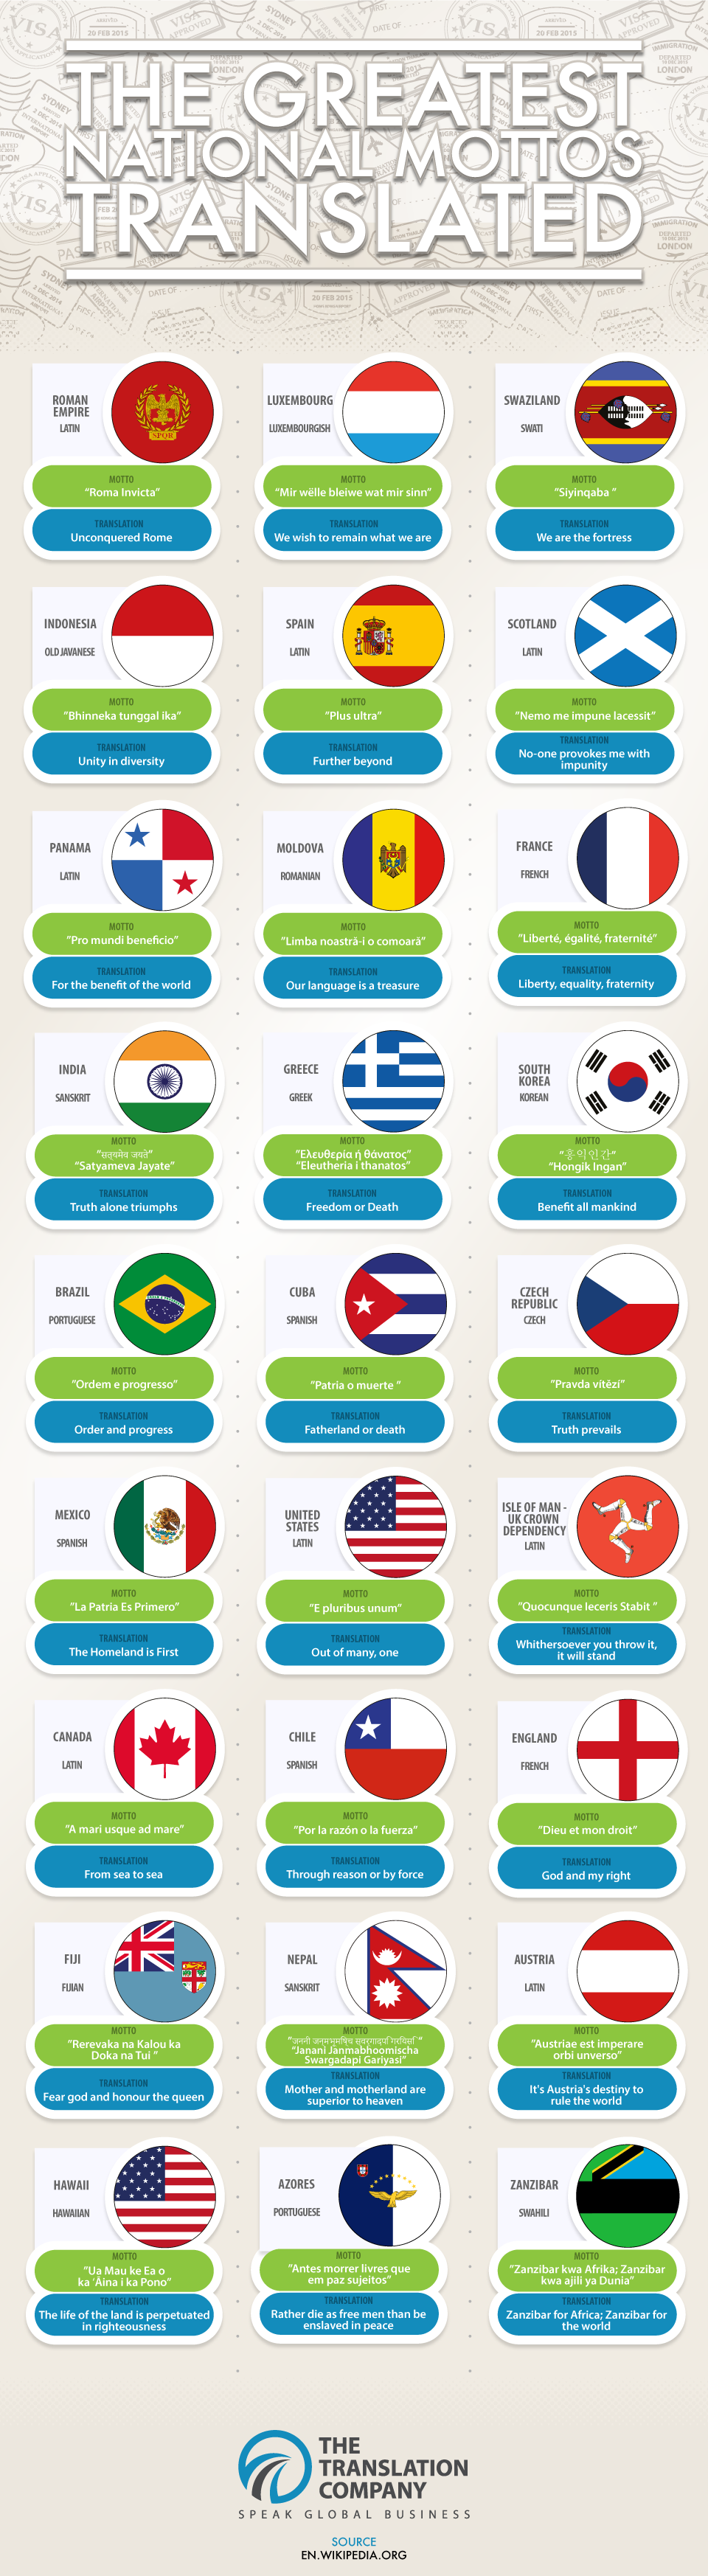 The Greatest National Mottos Translated #Infographic